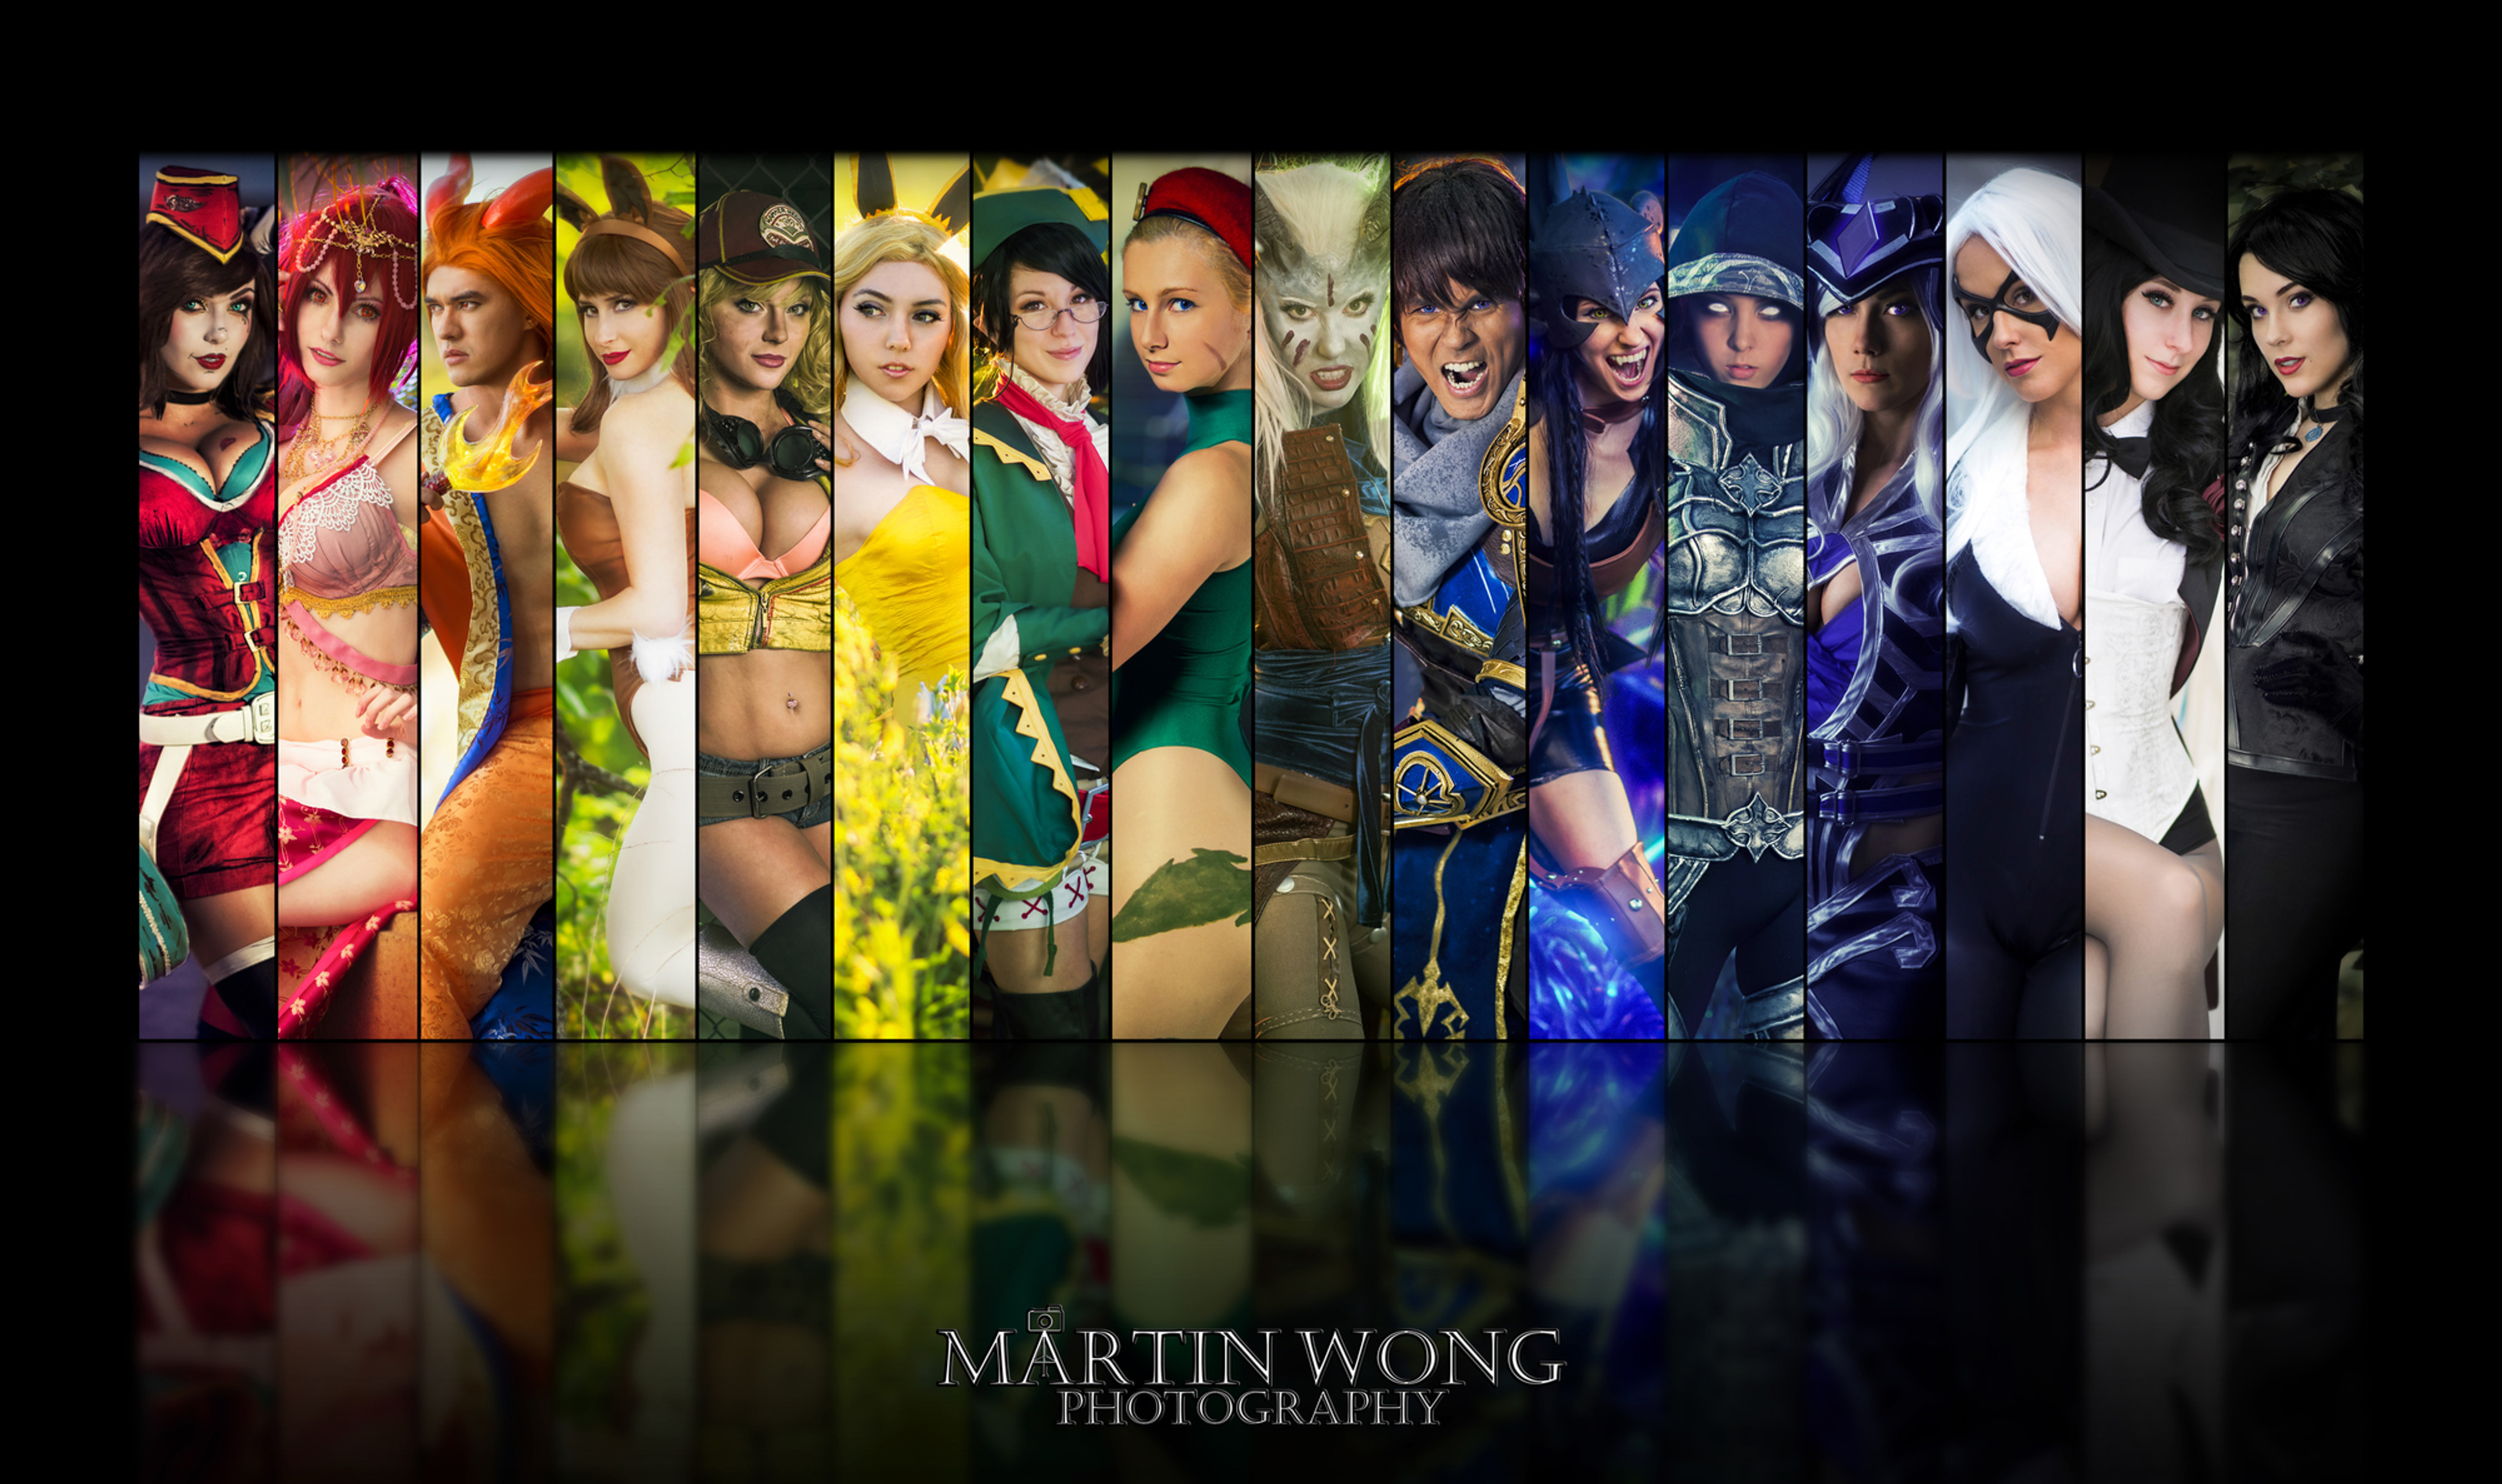 Martin Wong Cosplay Photography Workshop